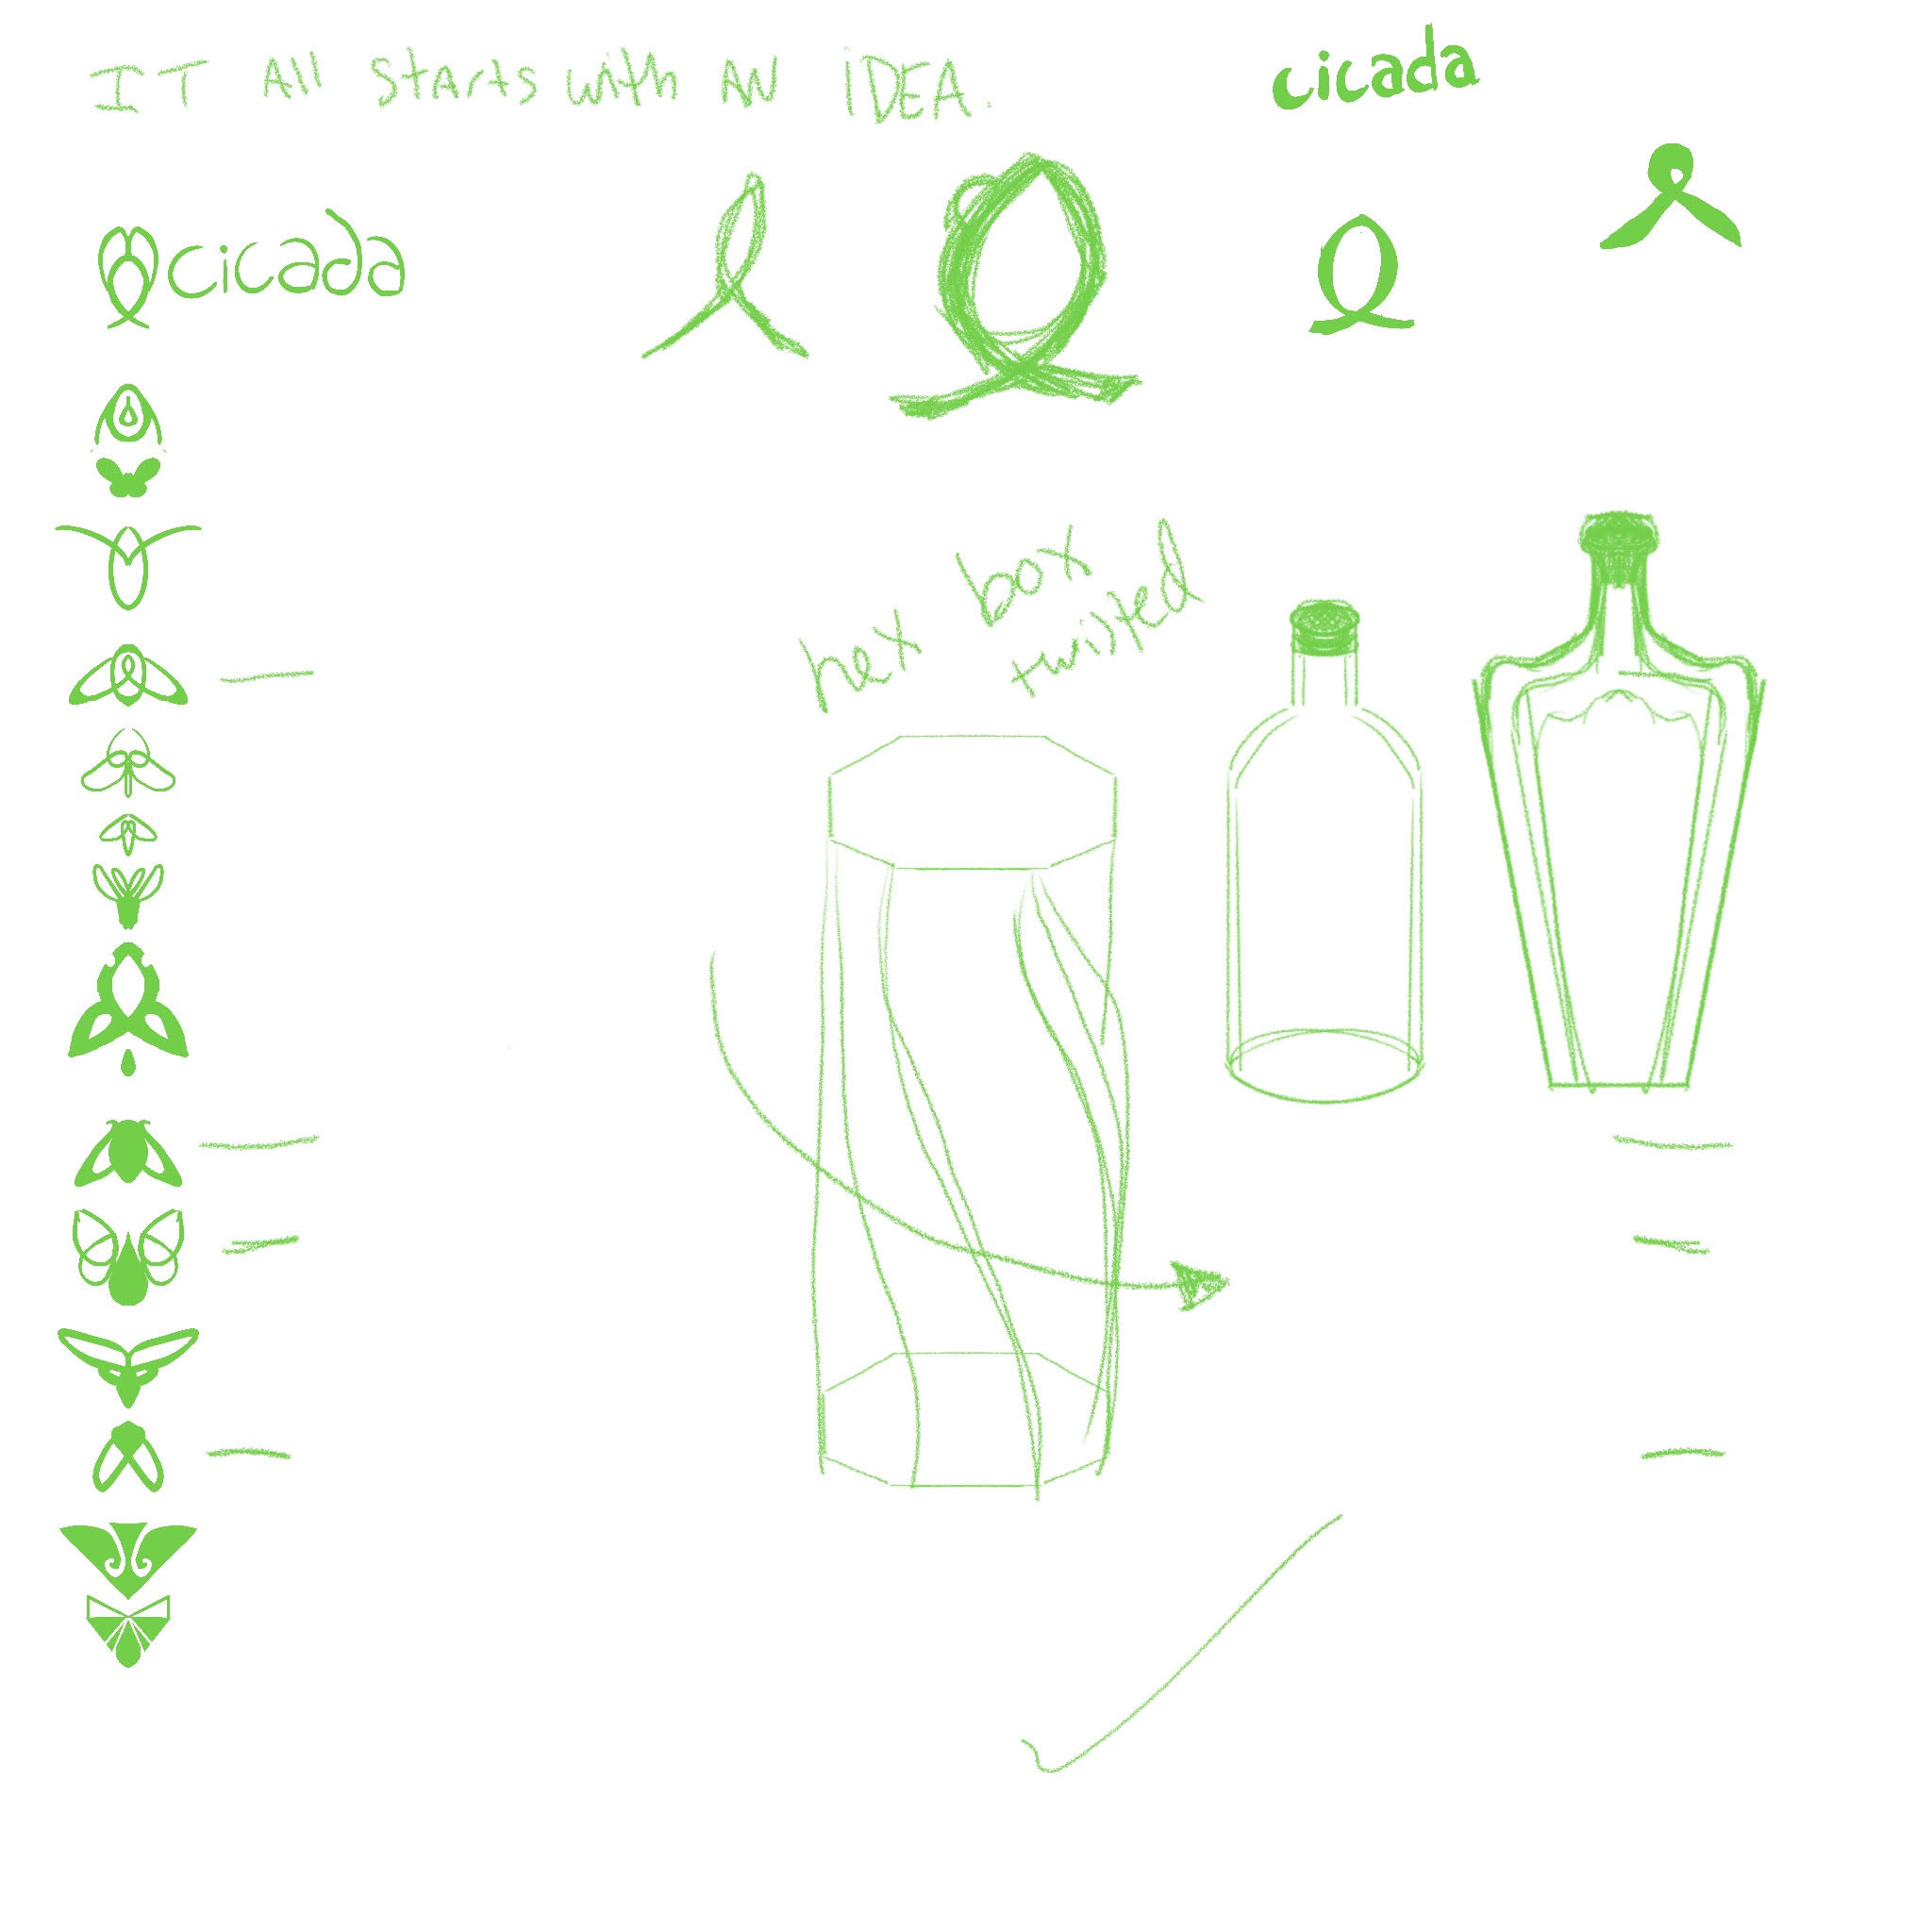 Initial project ideas/sketches